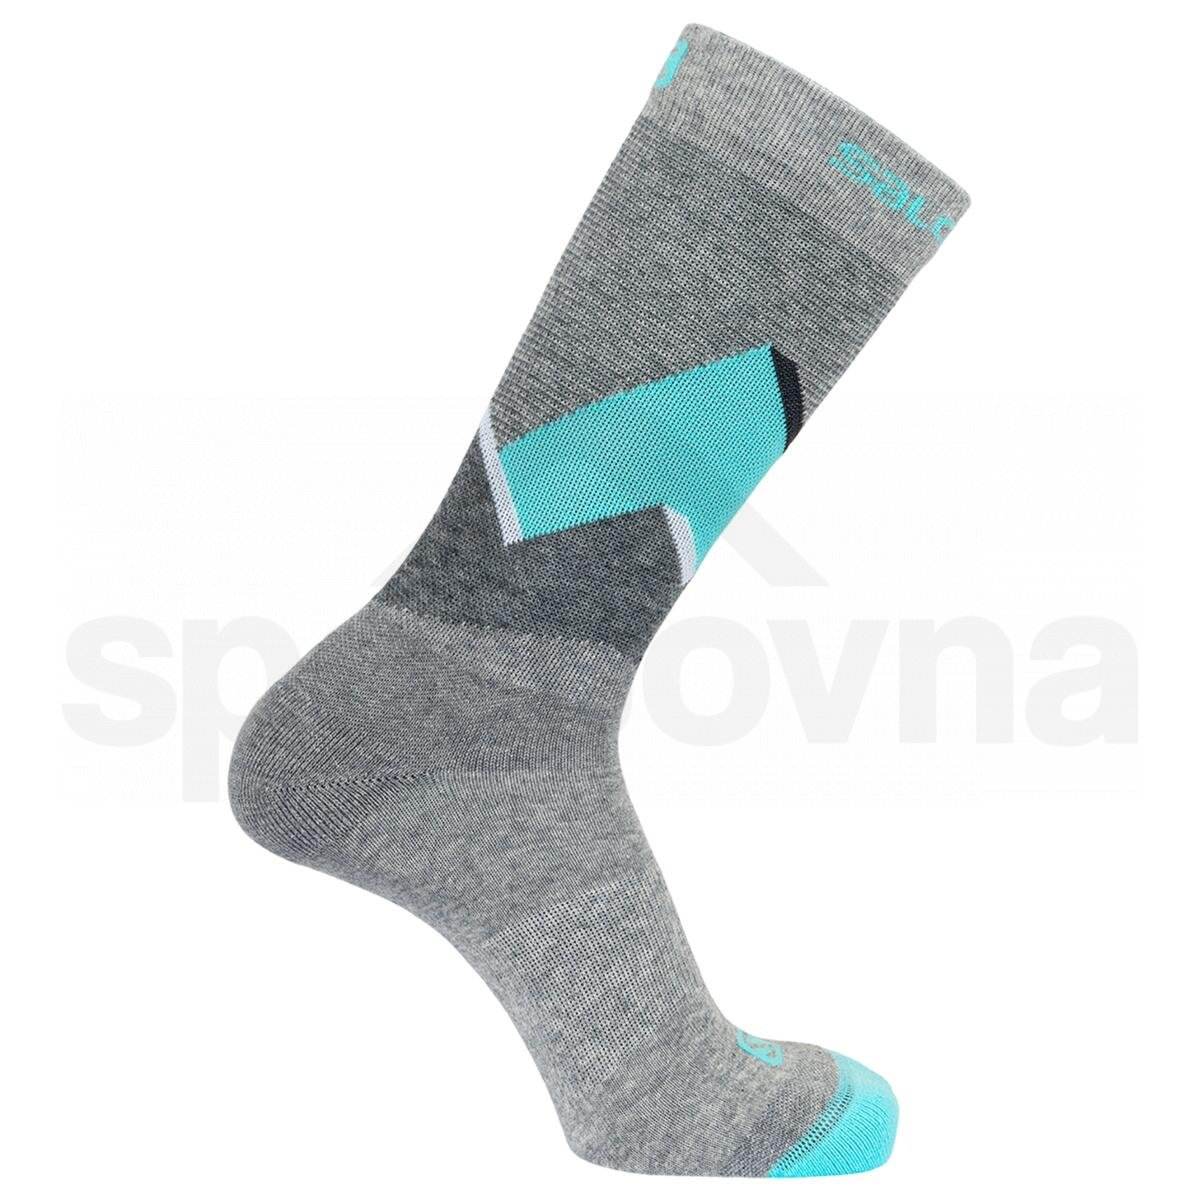 LC1555000_1_GHO_OUTLINE-PRISM-2-PACK_Medium-Grey_Pastel-Turquoise.png.cq5dam.web.1200.1200